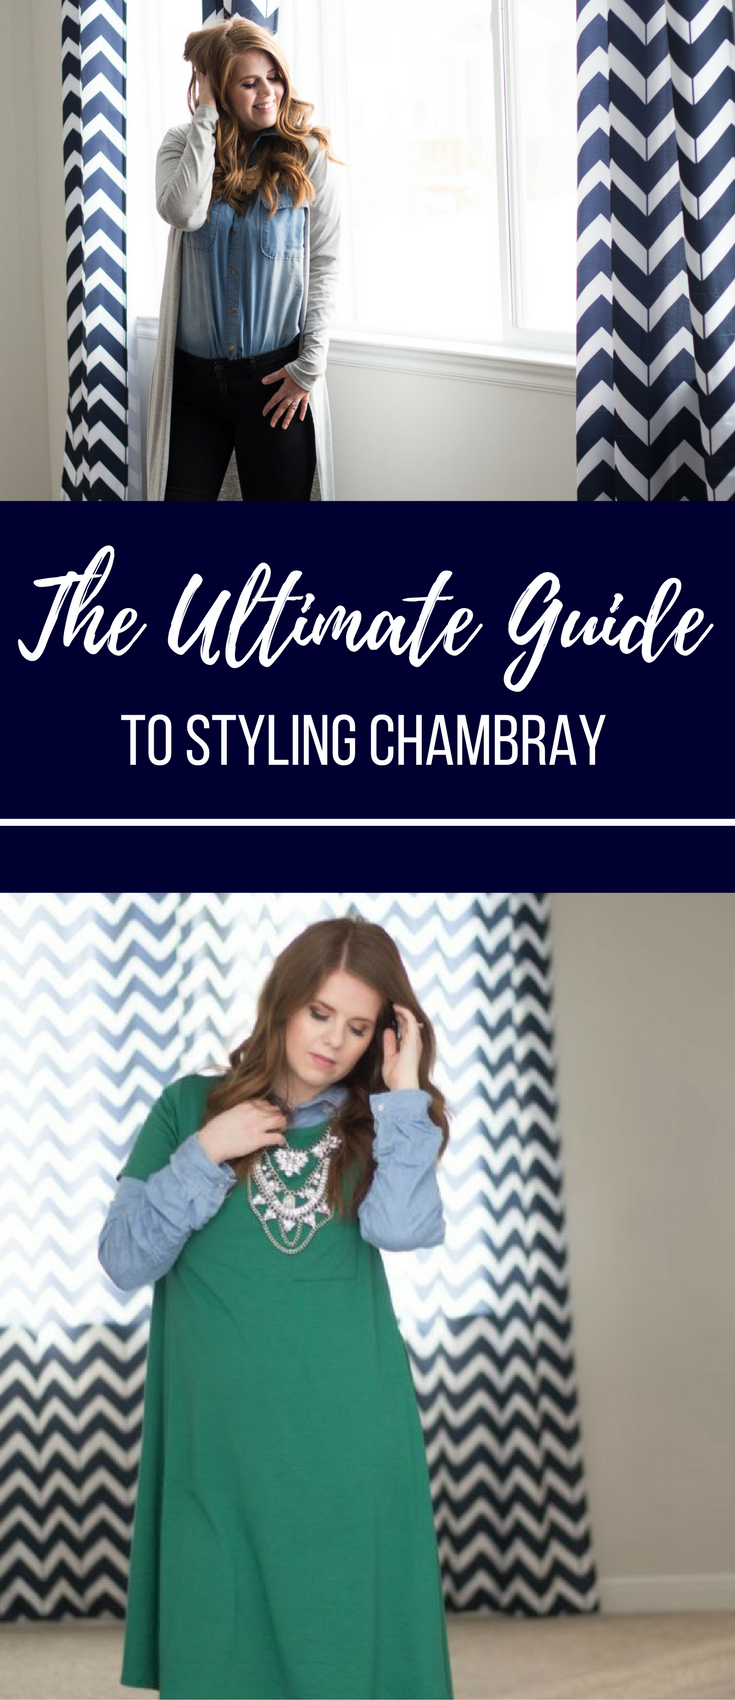 The Ultimate Guide to Styling Chambray